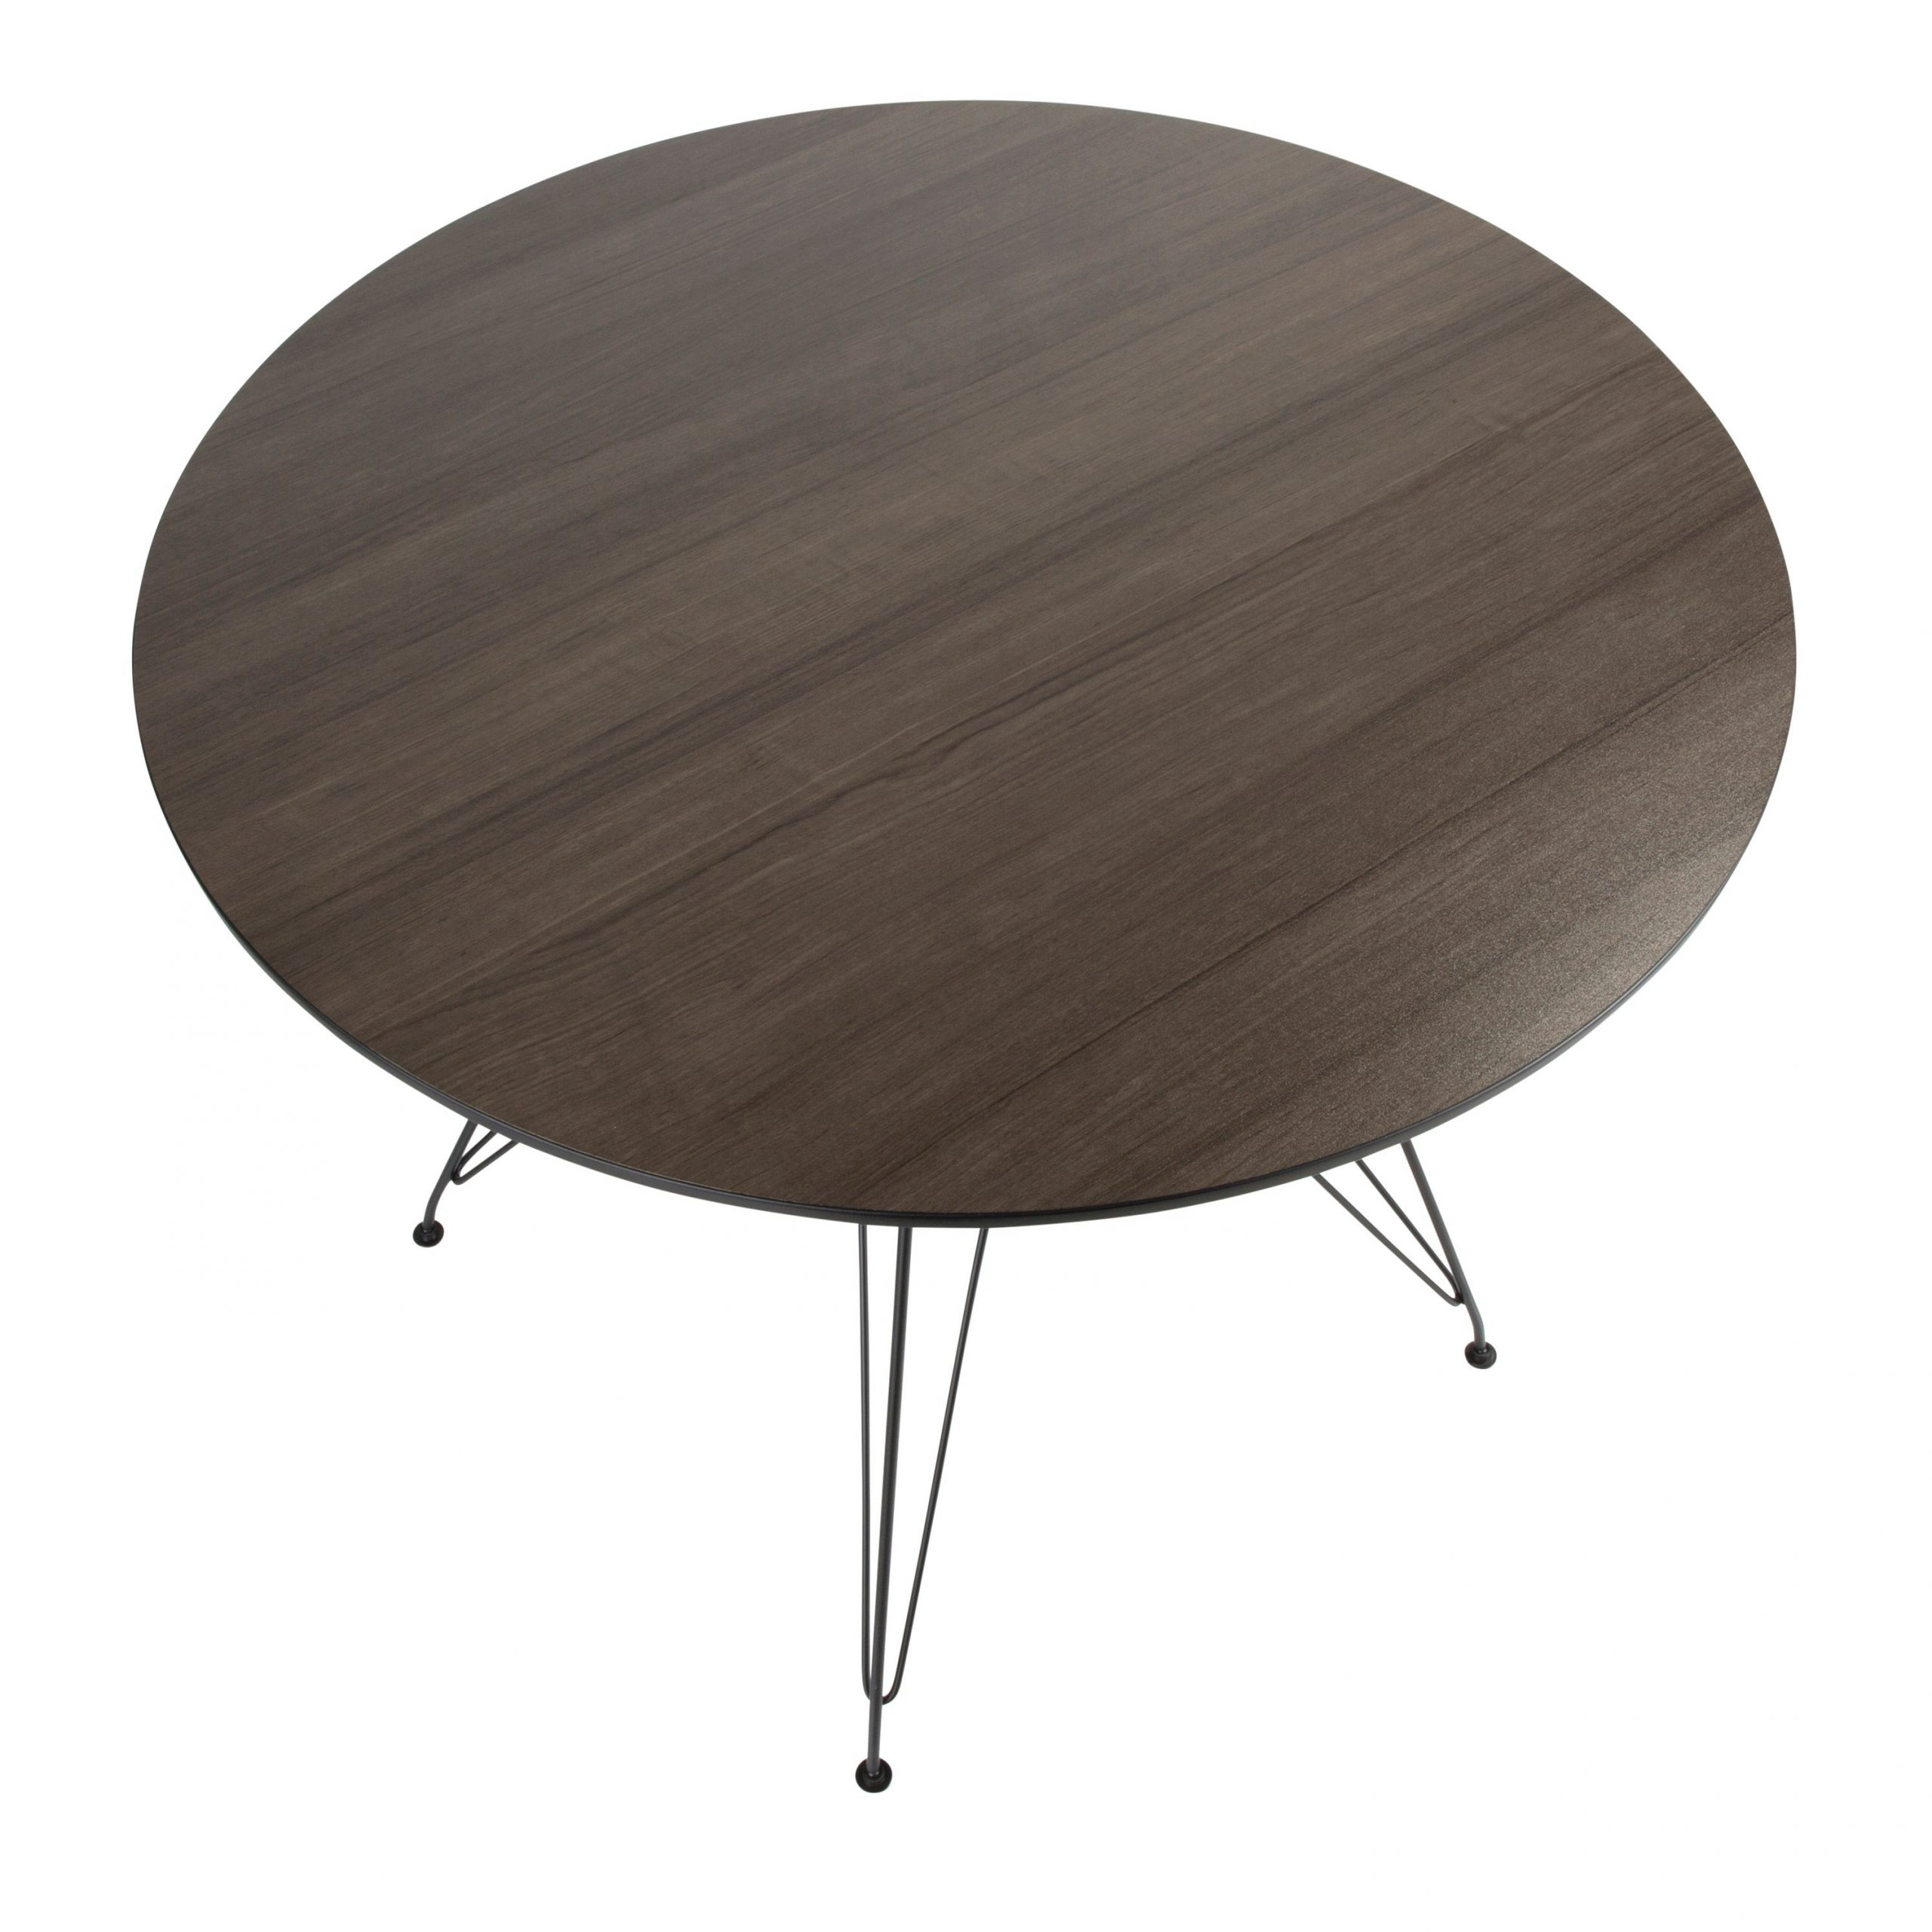 Avery Round Dining Table In Black And Walnut In Most Current Avery Round Dining Tables (View 3 of 25)